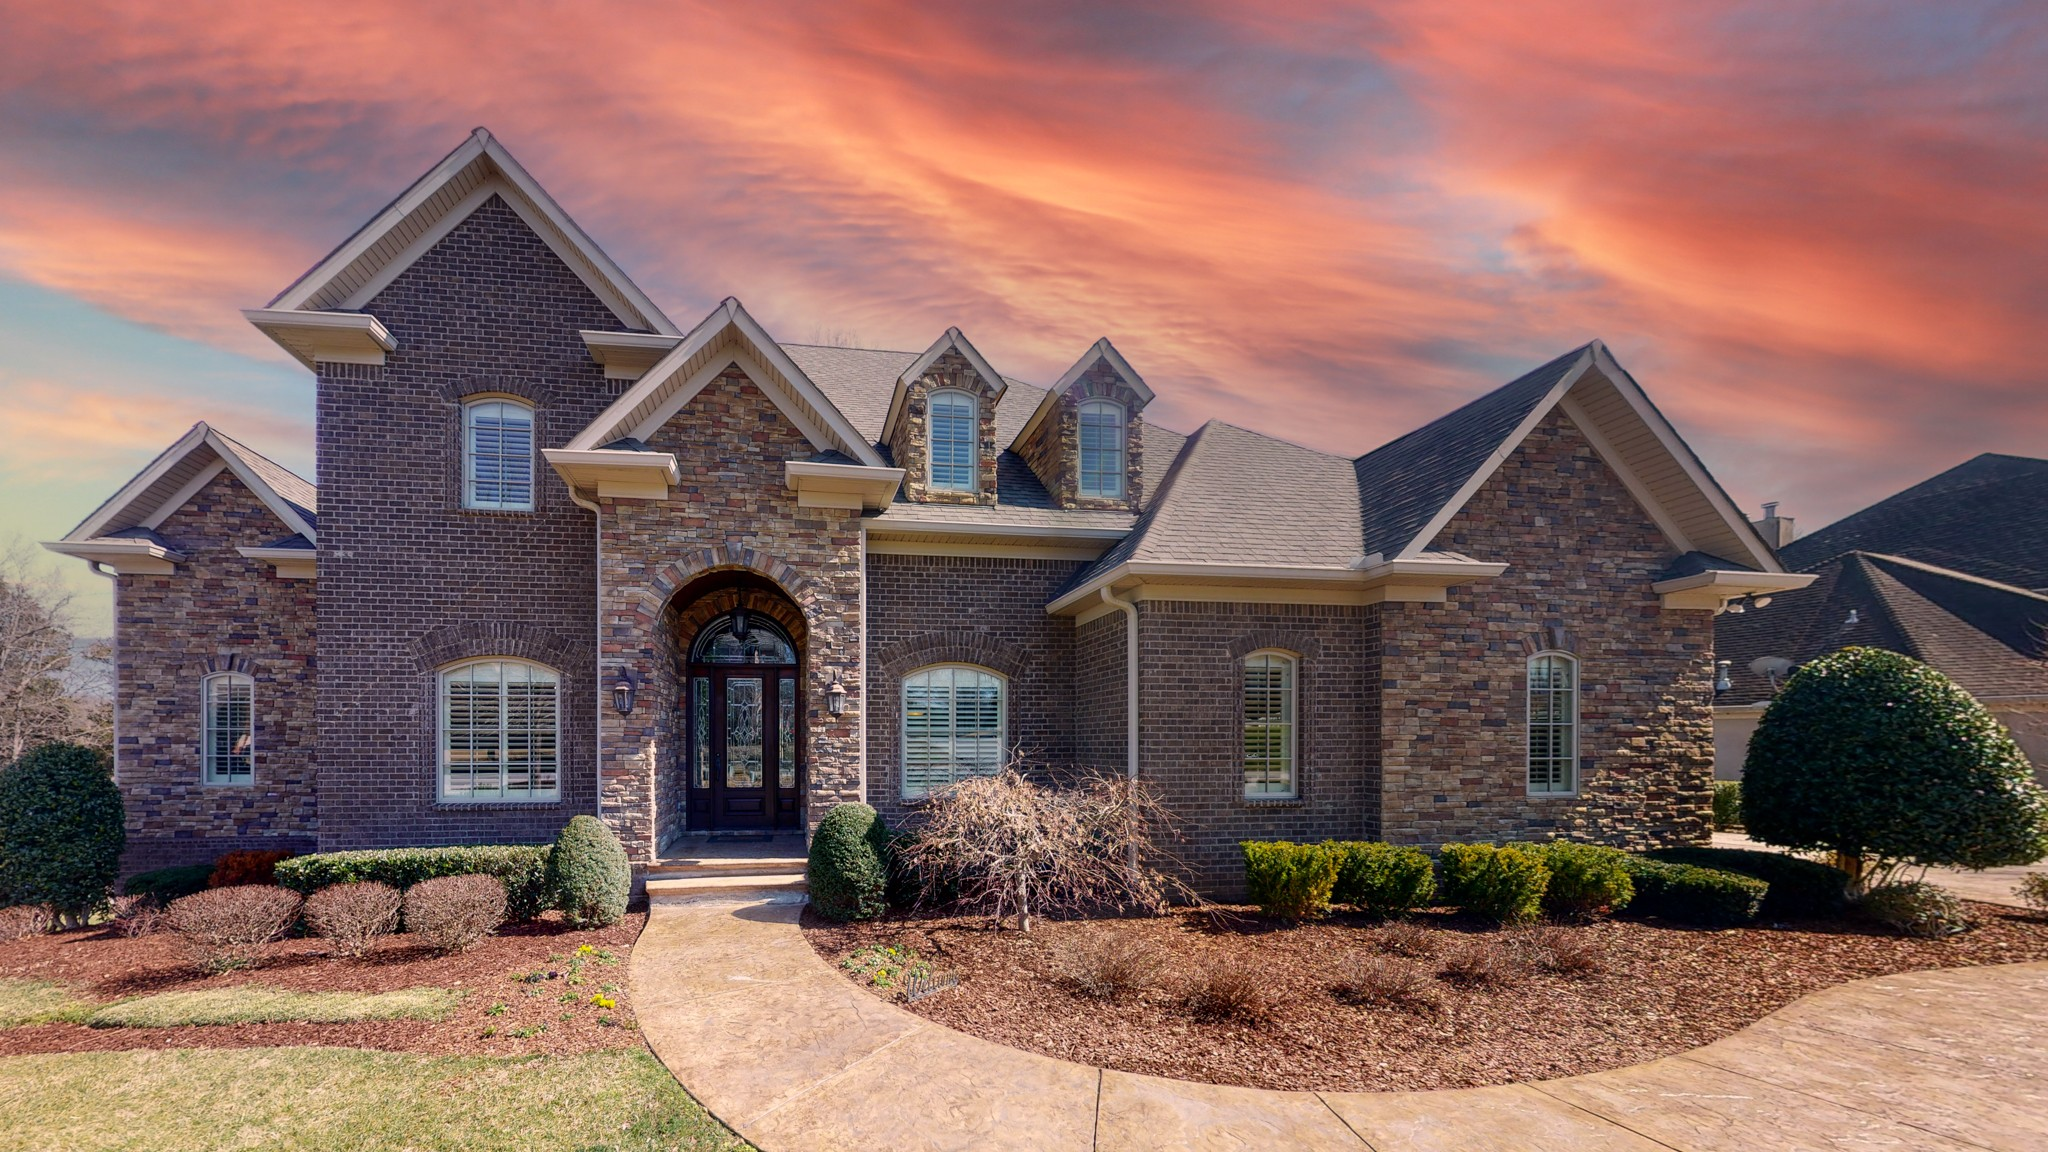 1124 Safety Harbor Cv Property Photo - Old Hickory, TN real estate listing